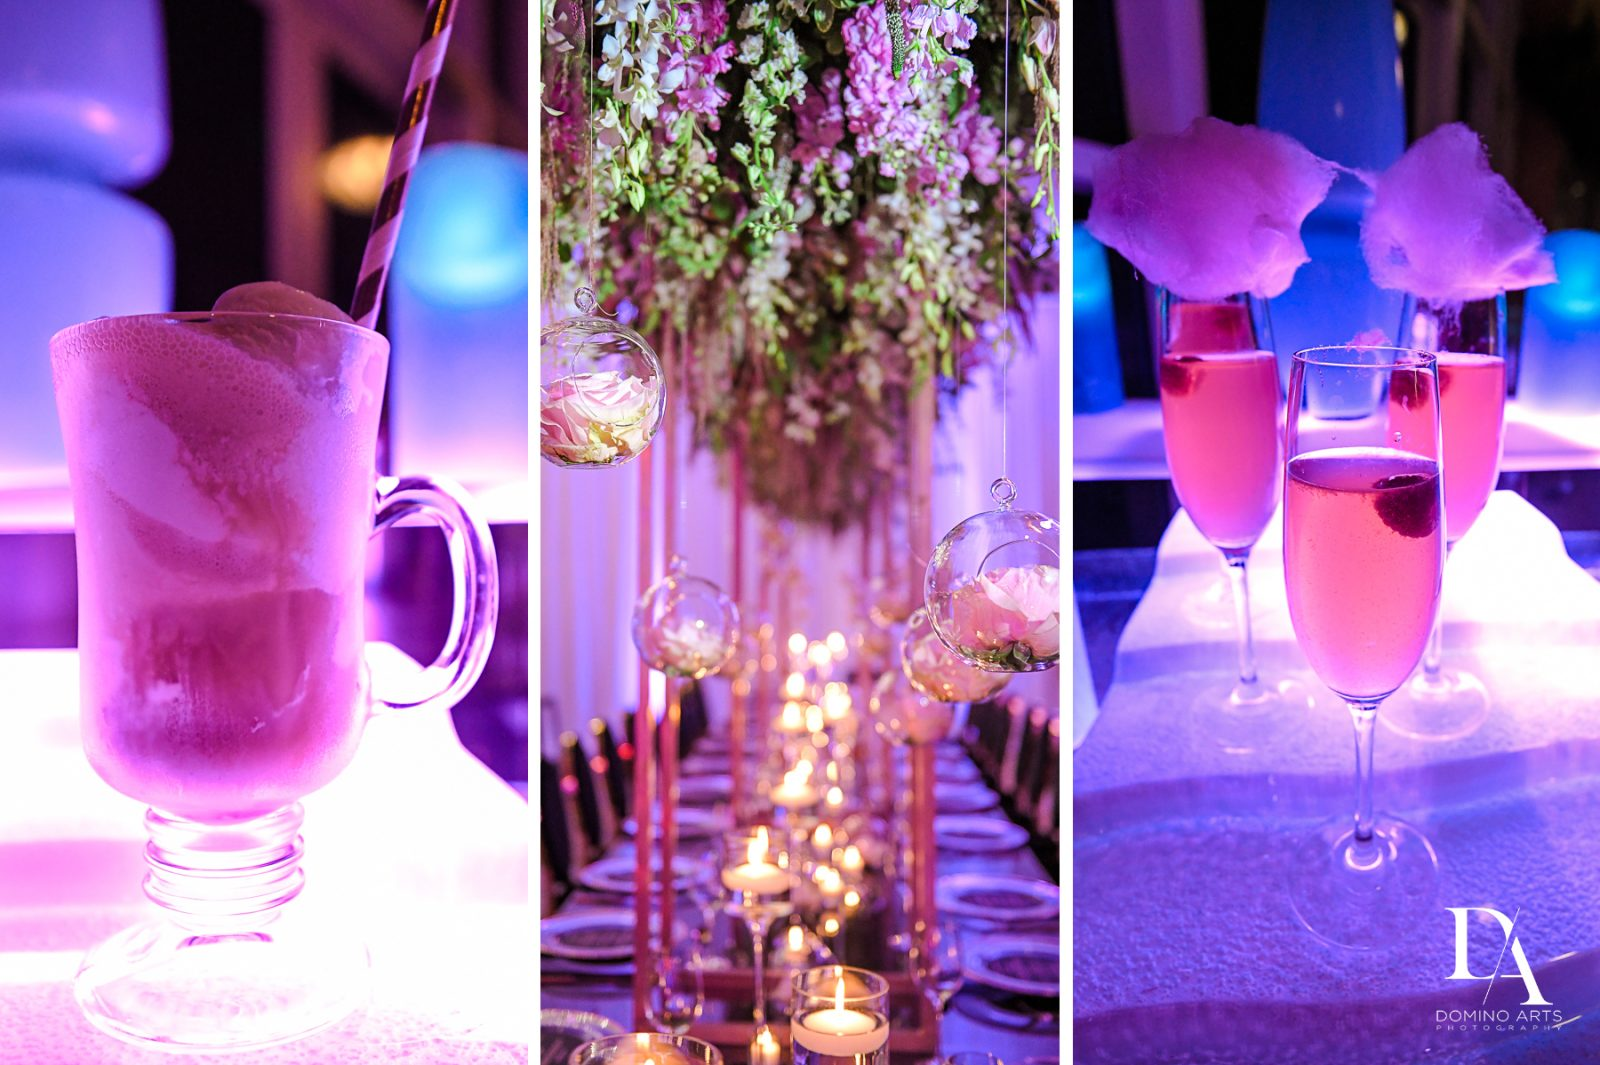 cotton candy cocktail at Masquerade Ball Bat Mitzvah at Ritz Carlton Fort Lauderdale by Domino Arts Photography